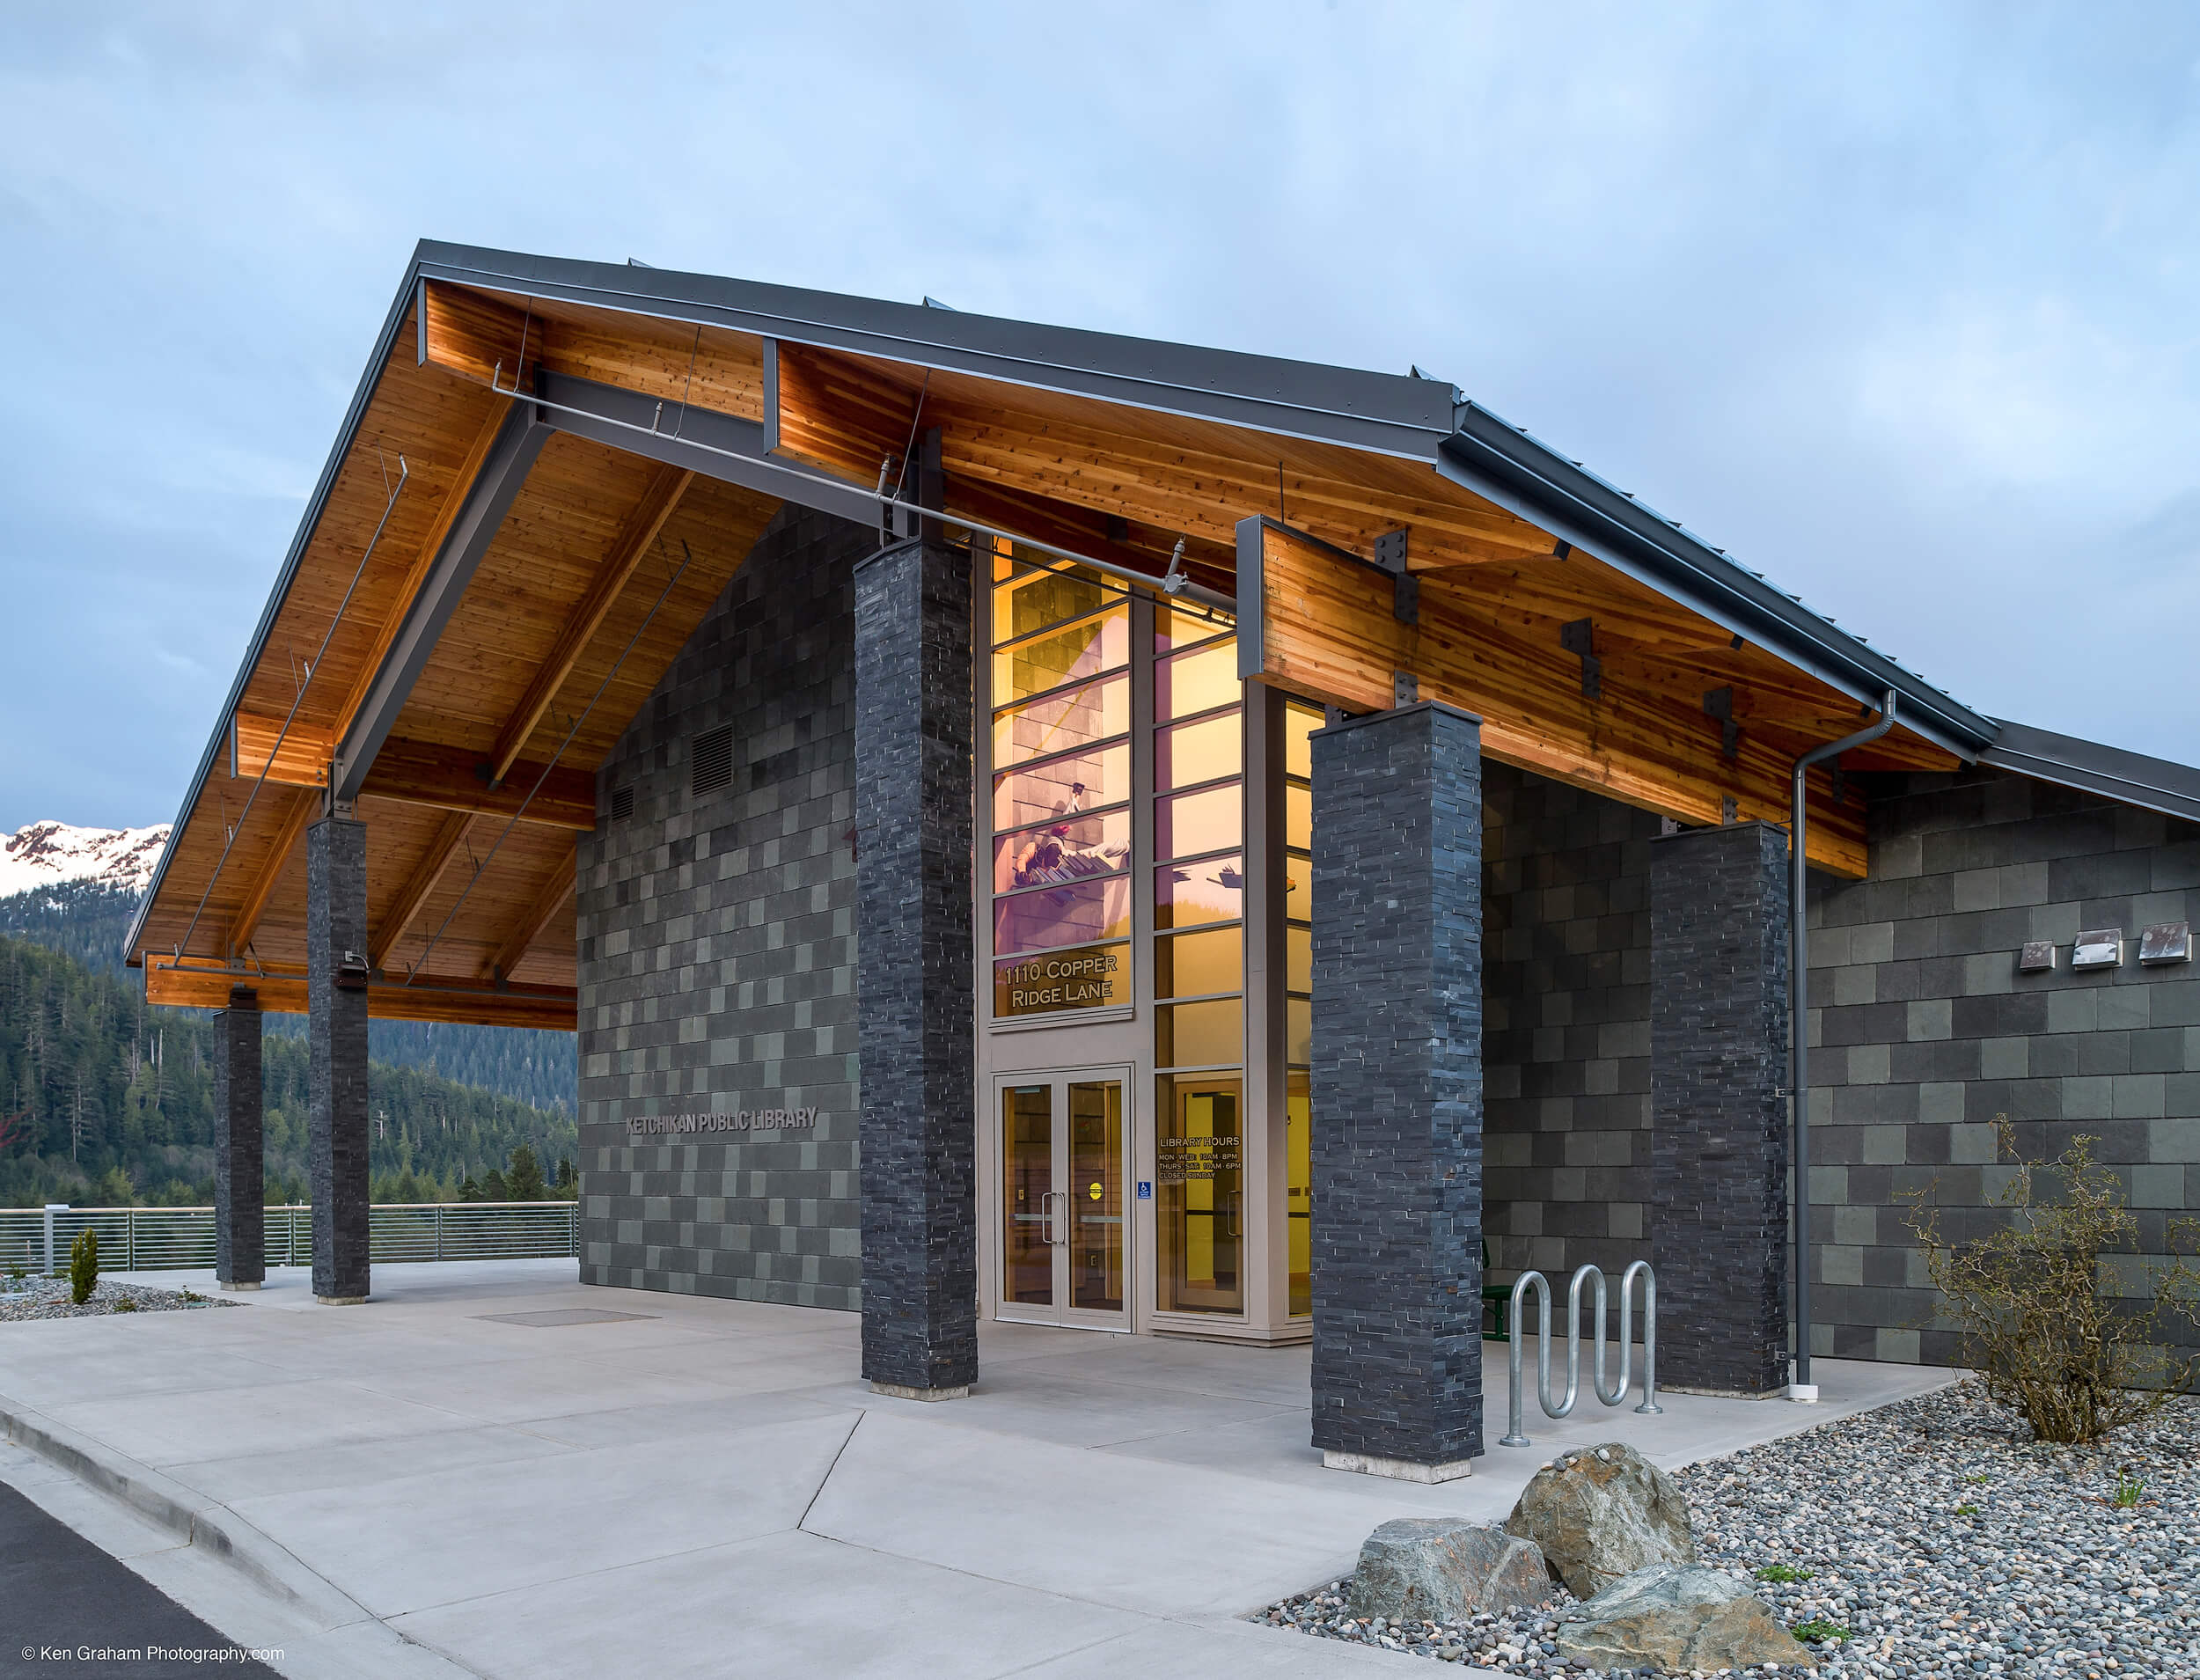 Expand Mendenhall Valley Library Entrance